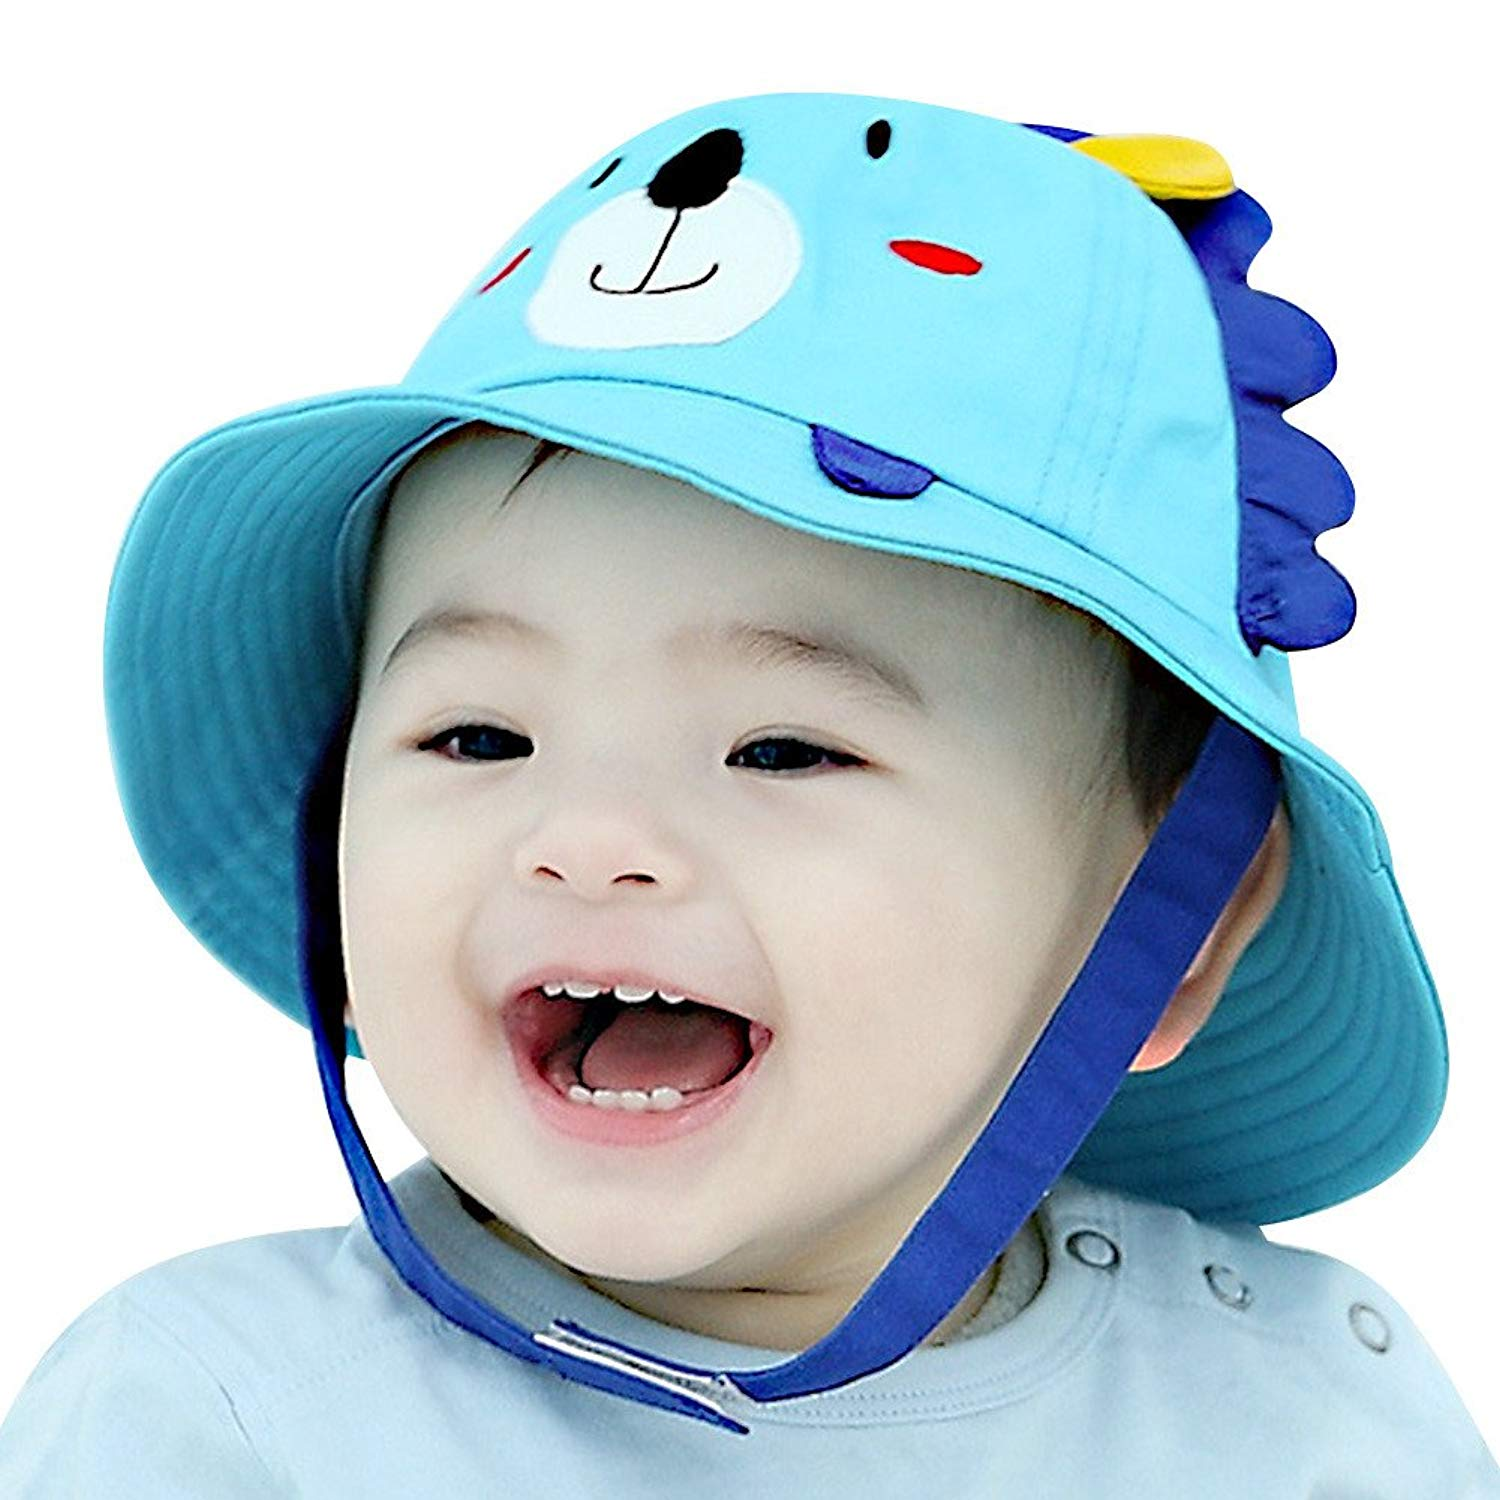 bc8a20b791e Get Quotations · IMLECK Little Lion Baby Sun Hat Outdoors Hat with Chin  Strap